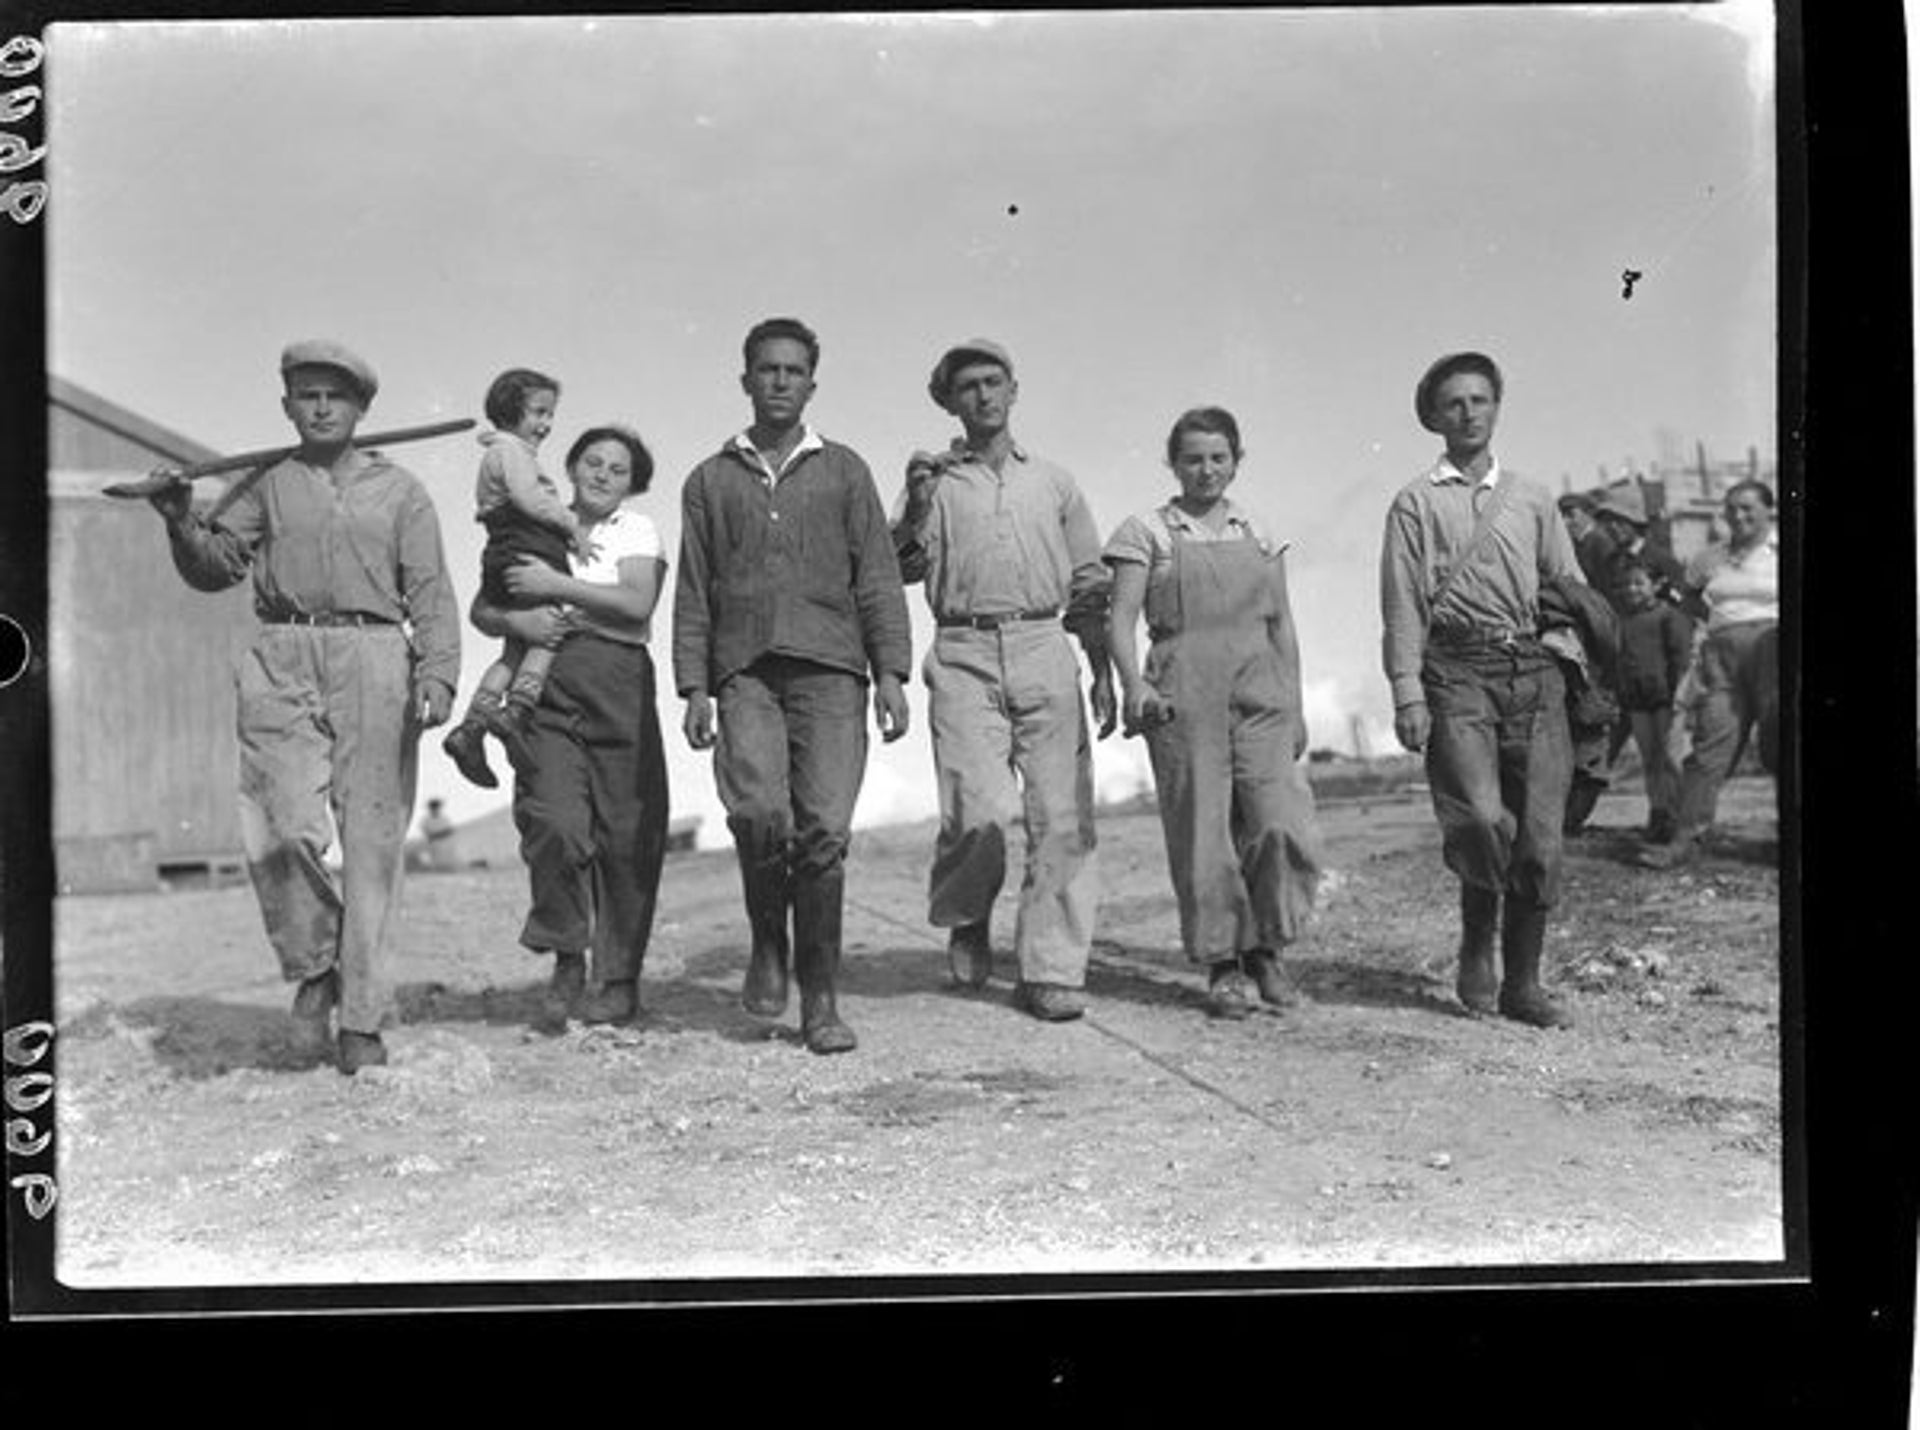 Laborers heading out to work in the fields at Kibbutz Ma'abarot, 1939.